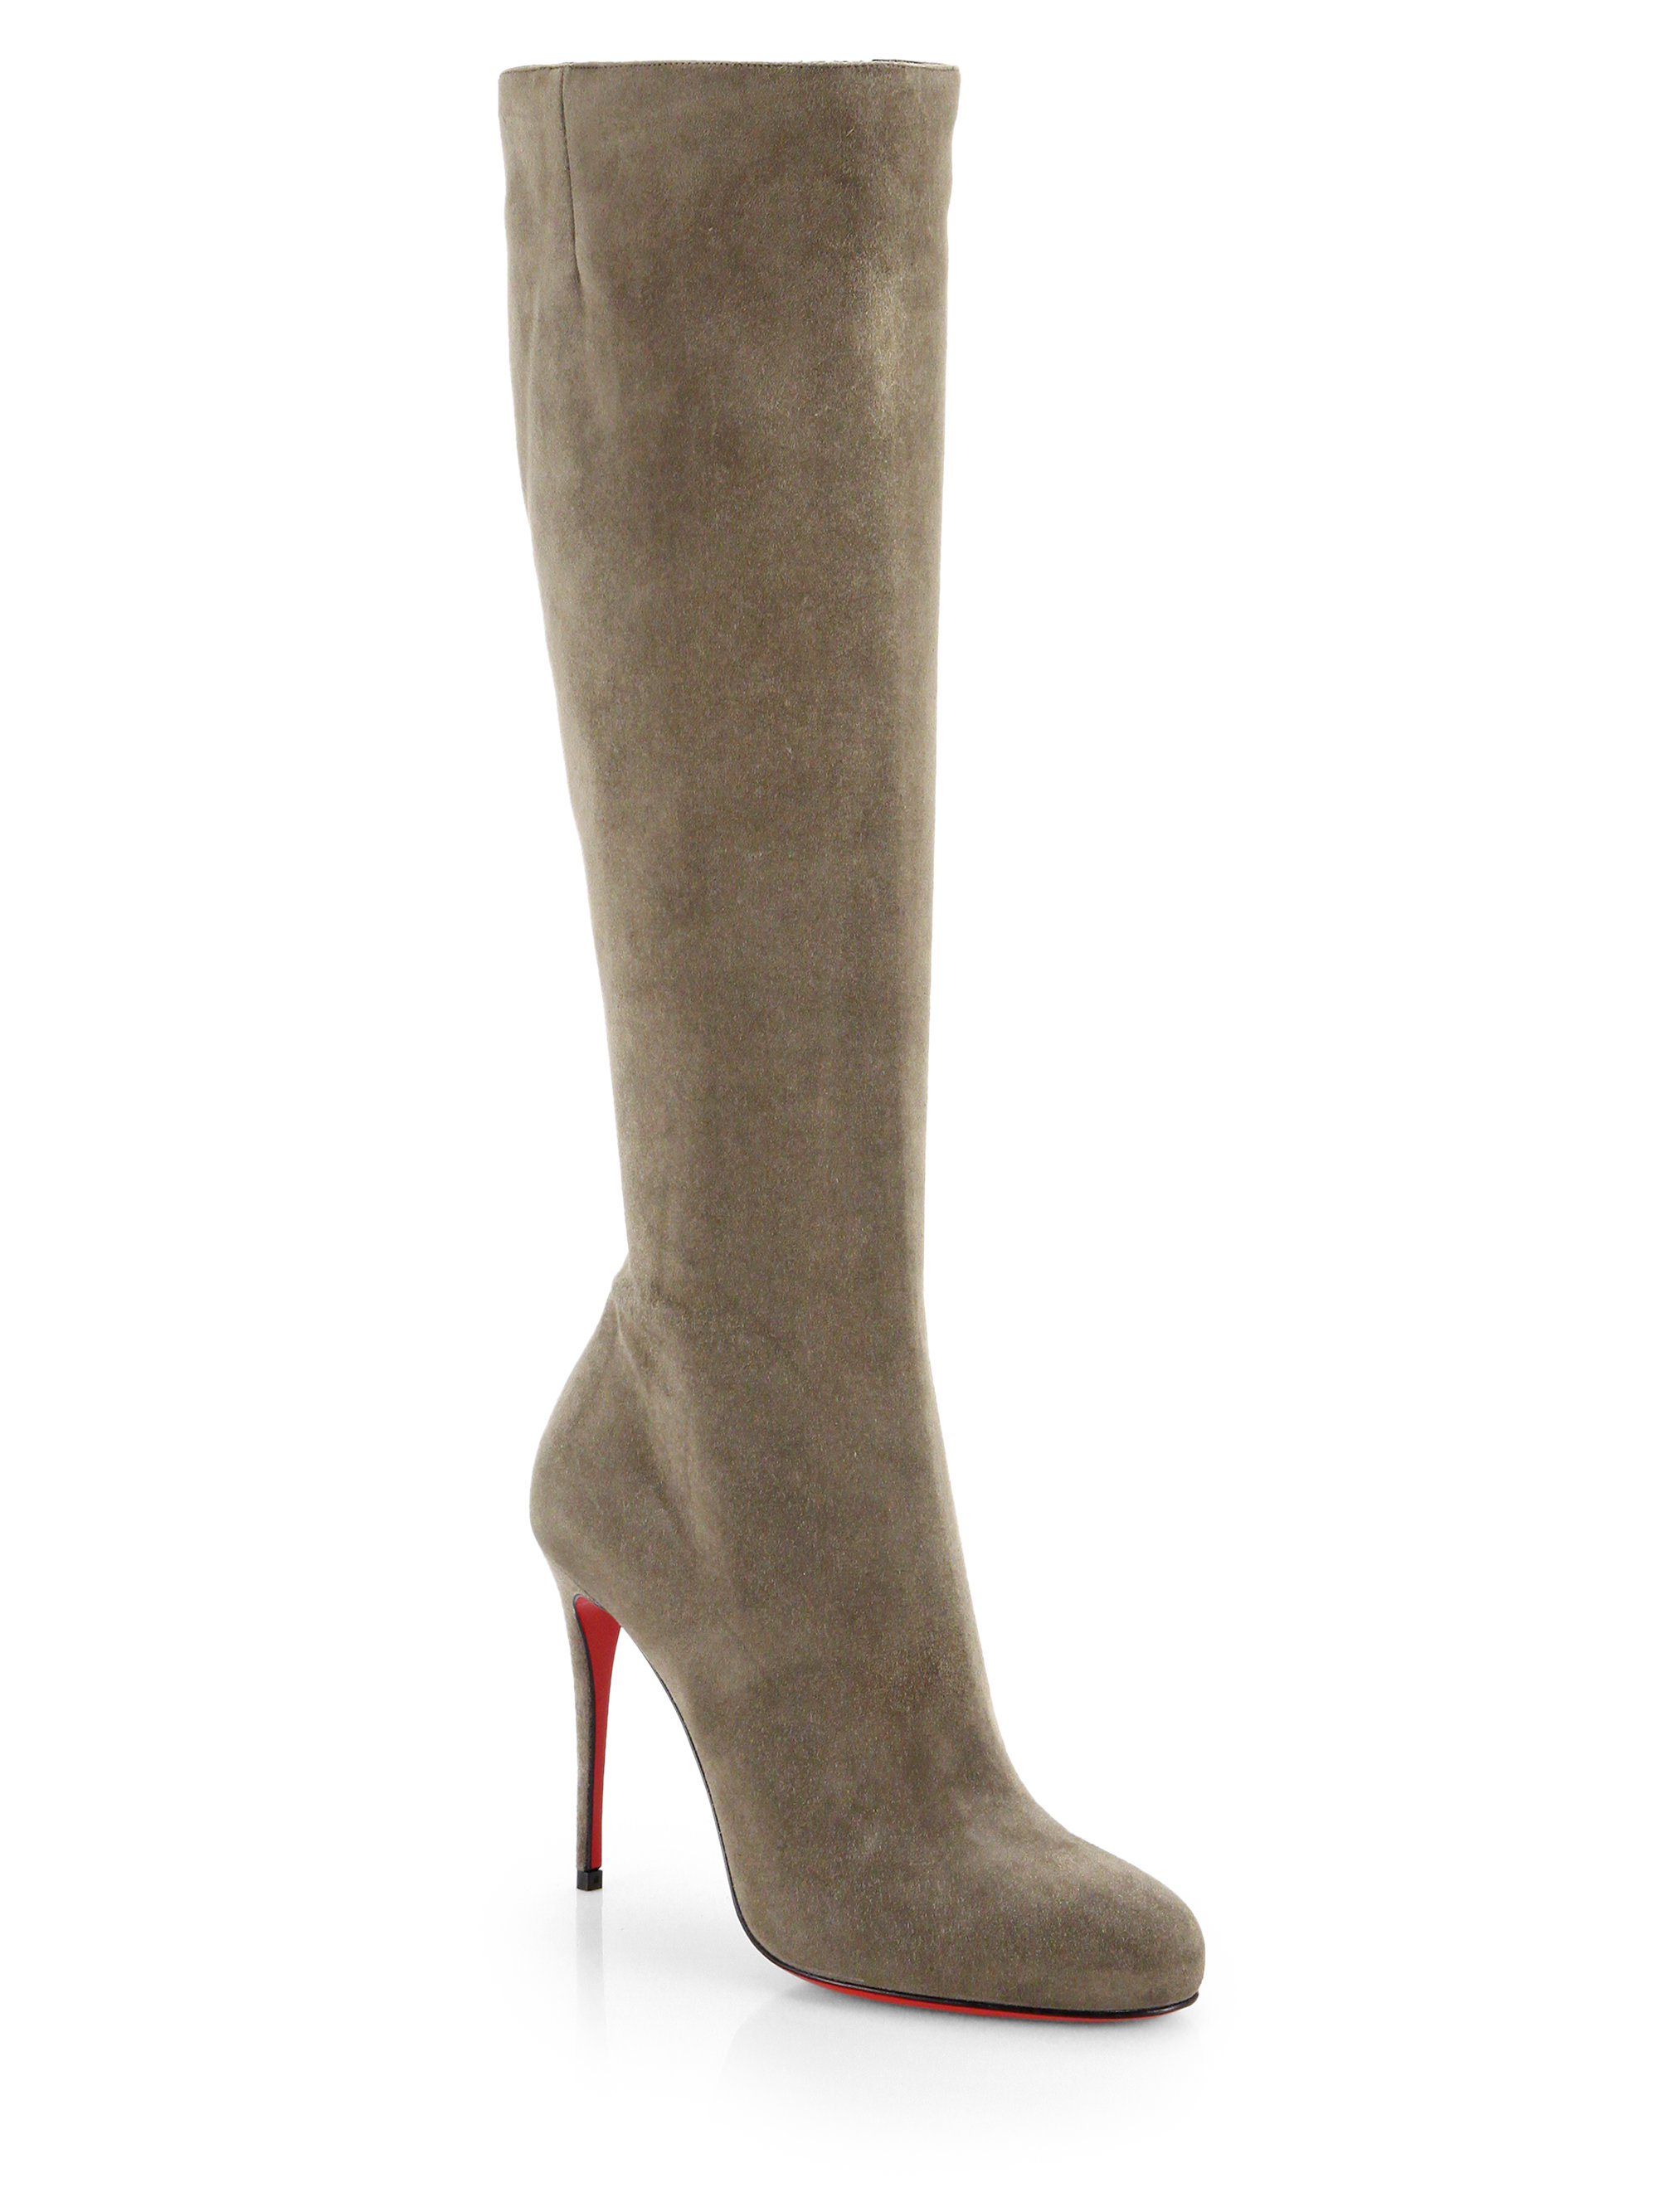 christian louboutin fifi botta suede knee high boots in